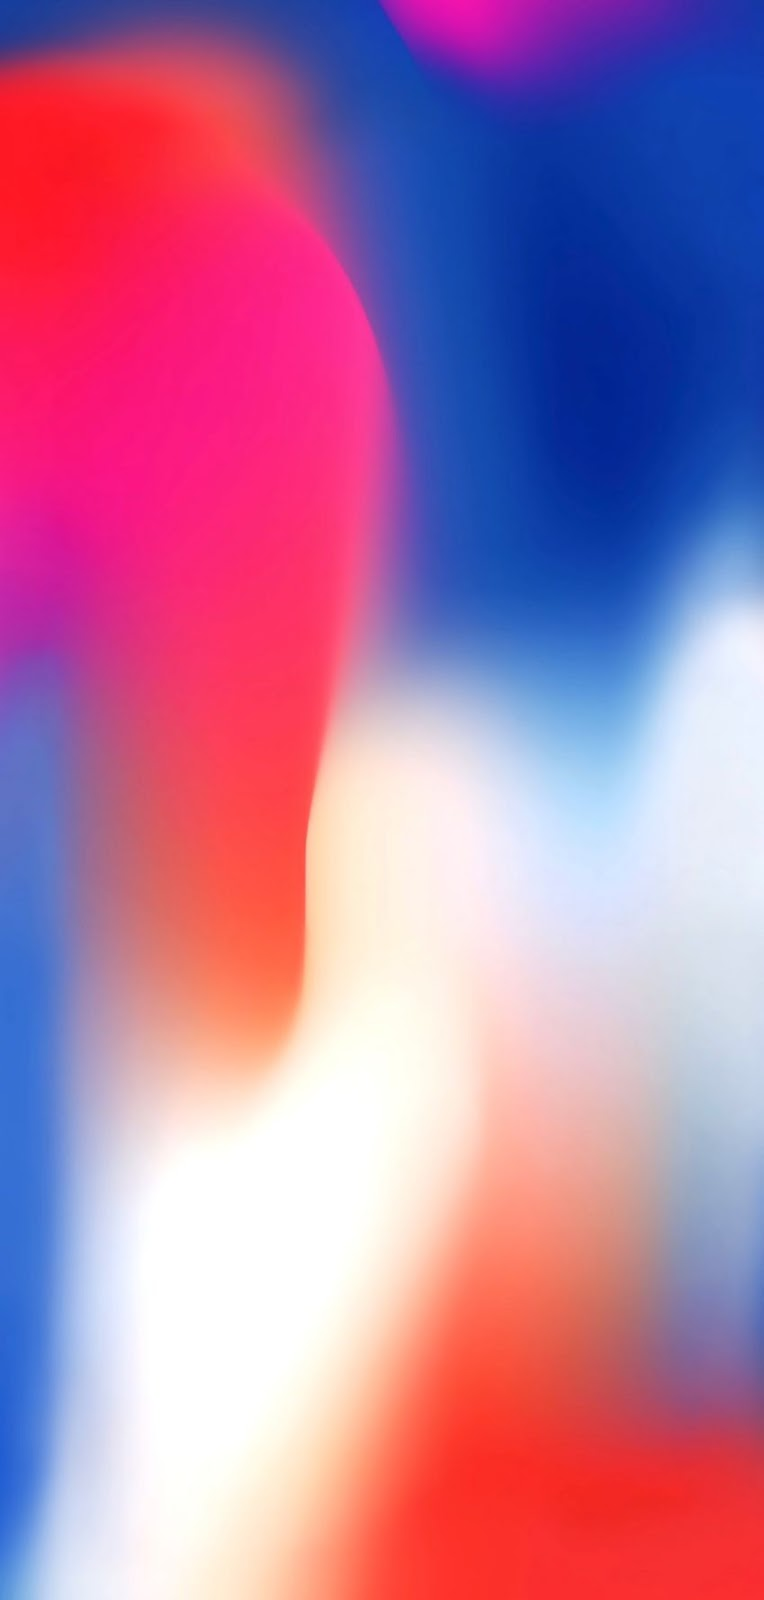 Download iPhone X Dynamic And Live Wallpapers